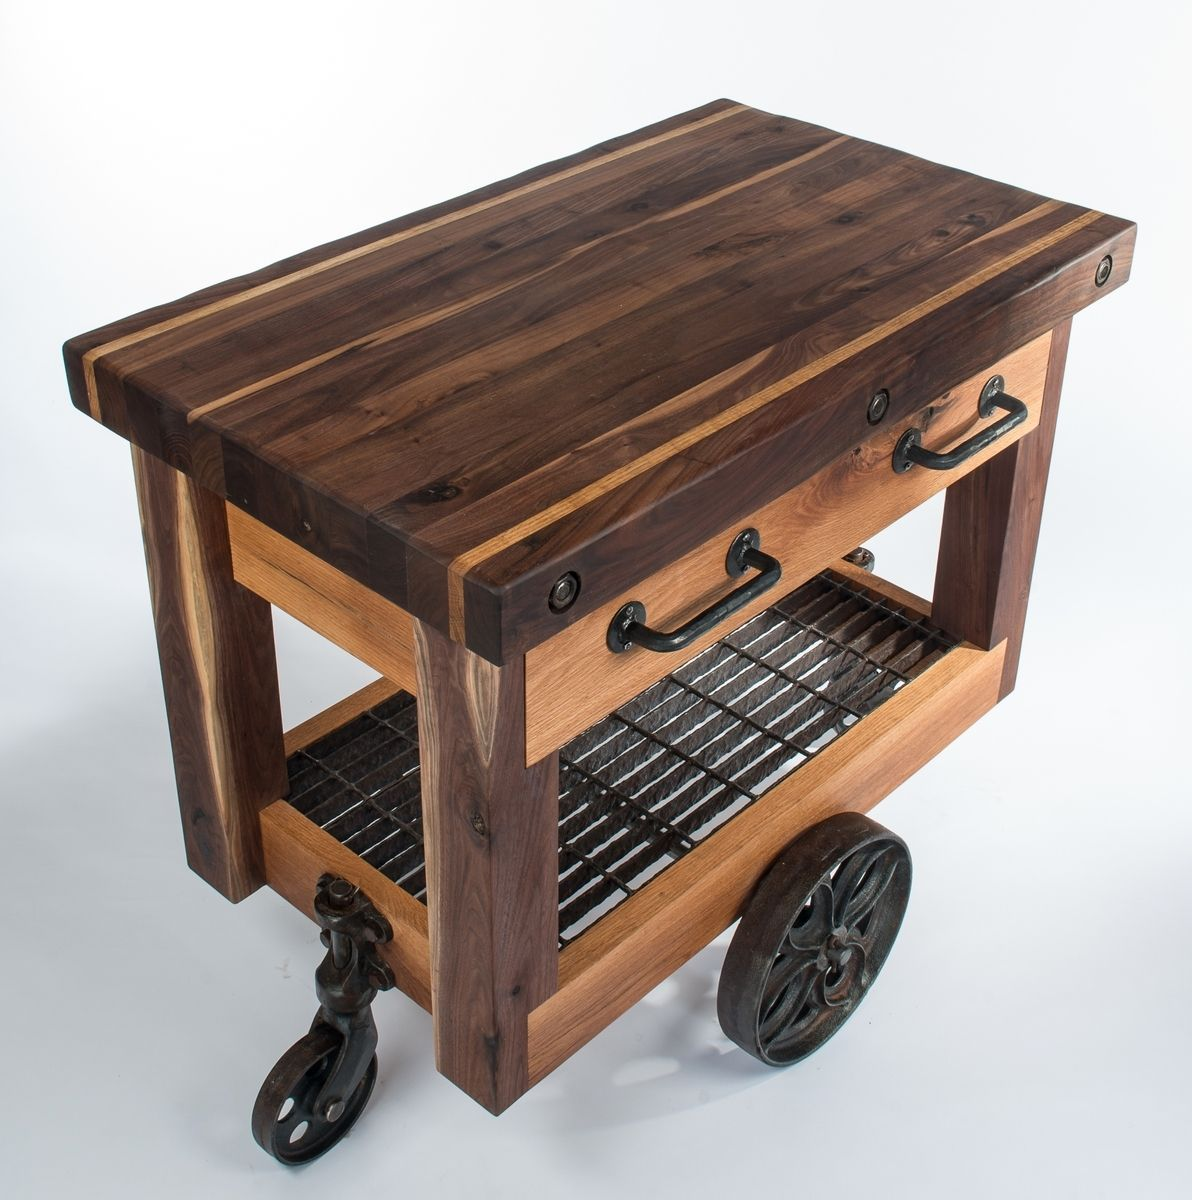 Hand Crafted Walnut And Oak Lineberry Factory Cart Butcher S Block Island By Wood Works Custommade